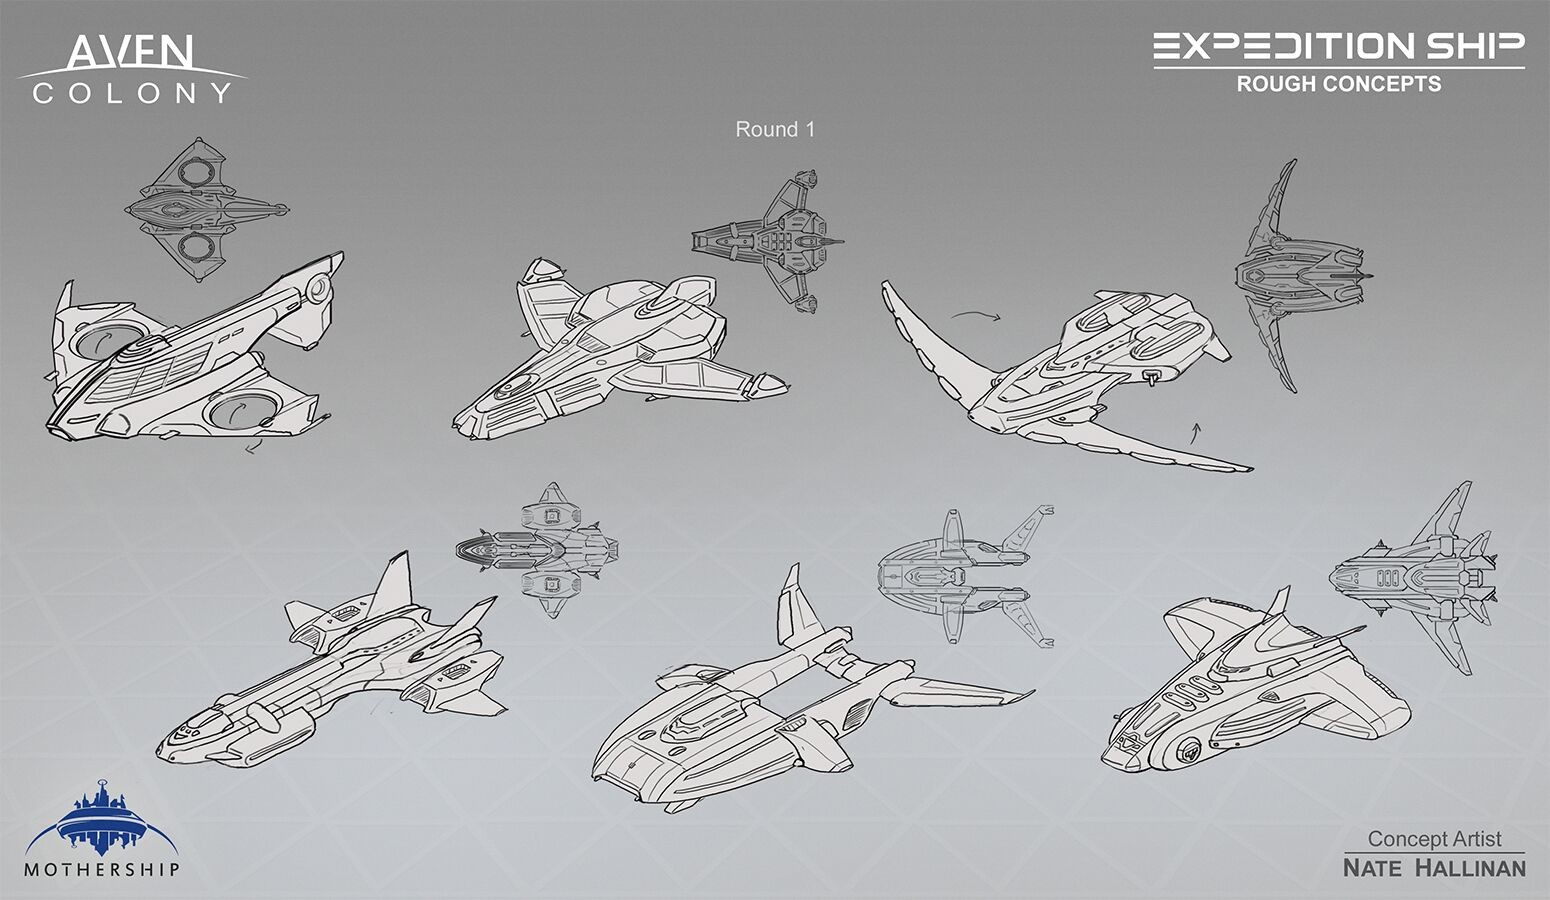 Initial sketches for the Expedition Ship.